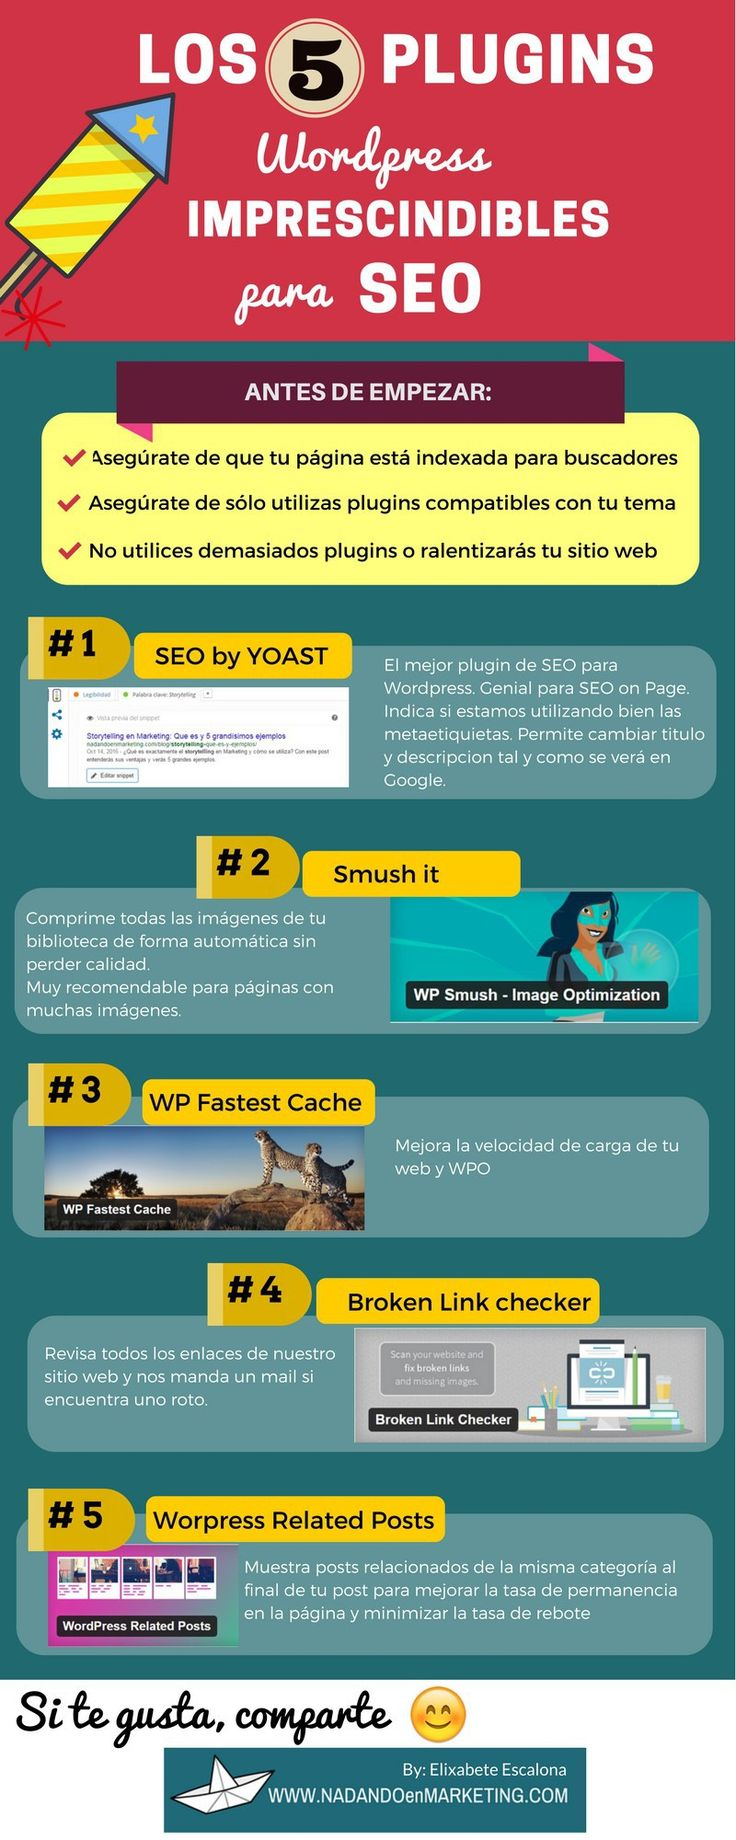 5 plugins de WordPress Imprescindibles para SEO #infografía